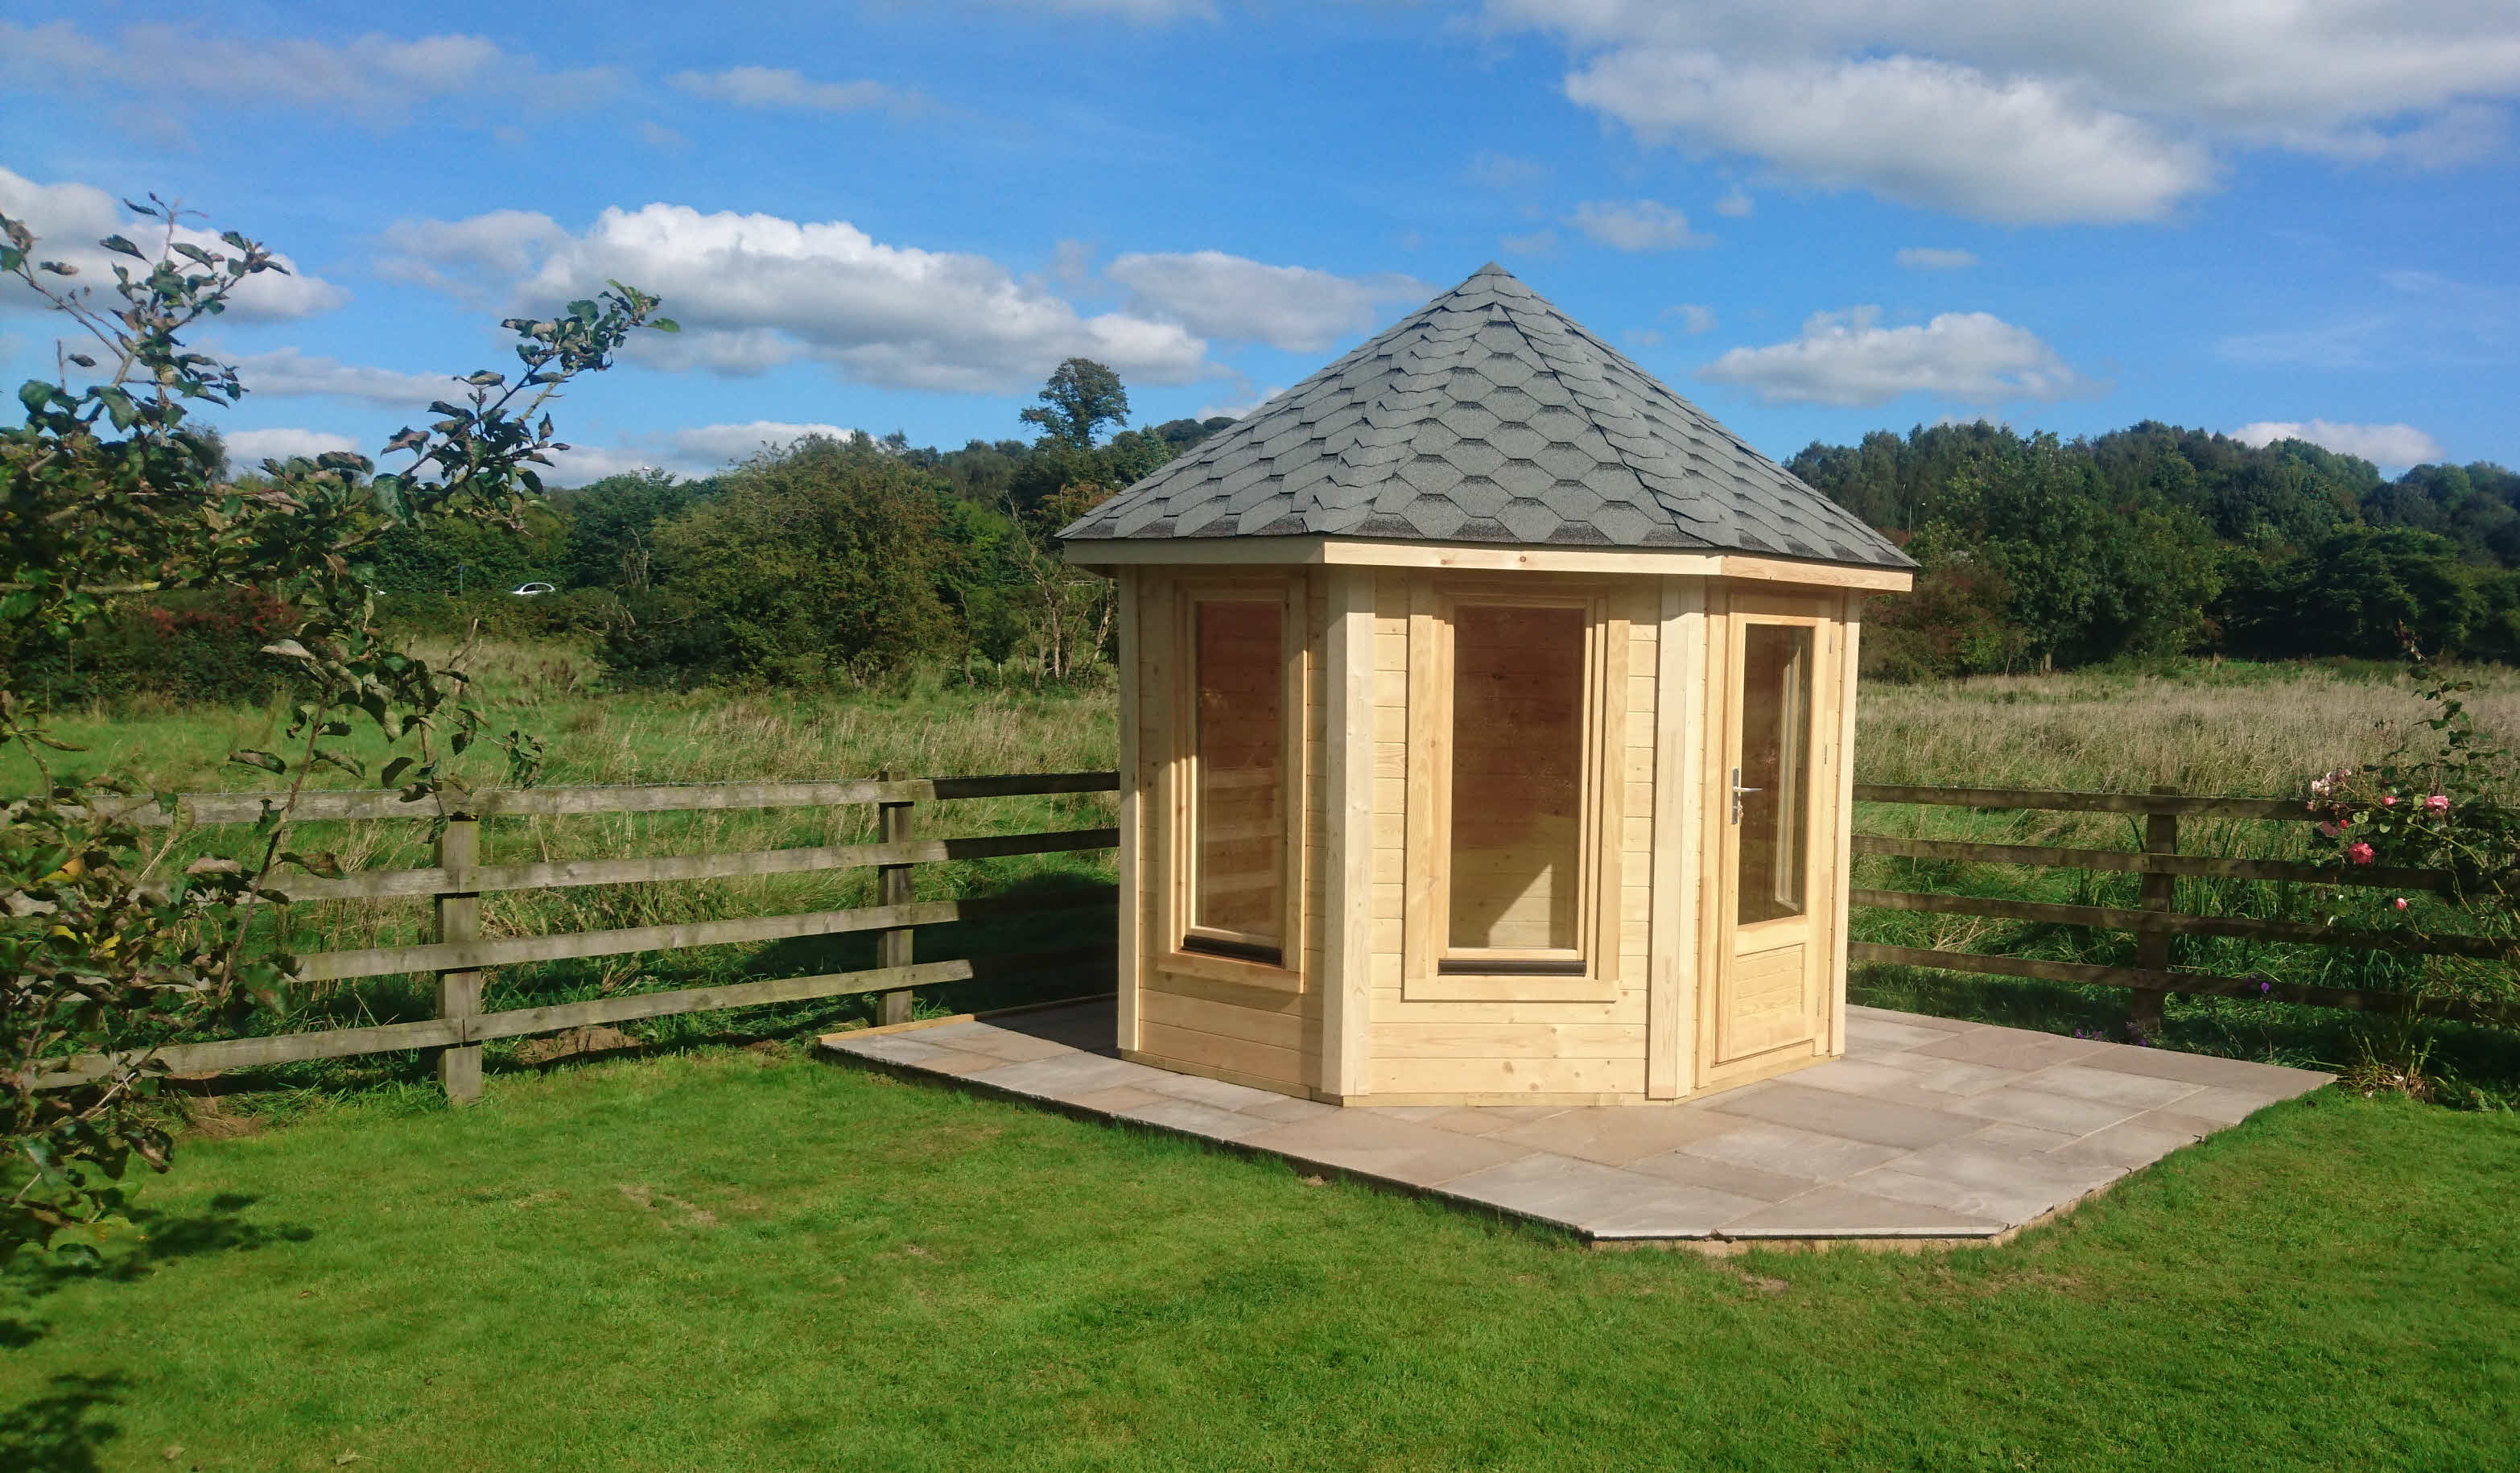 Summerhouse_Whalley_3m x 3m_Timber Cabins UK